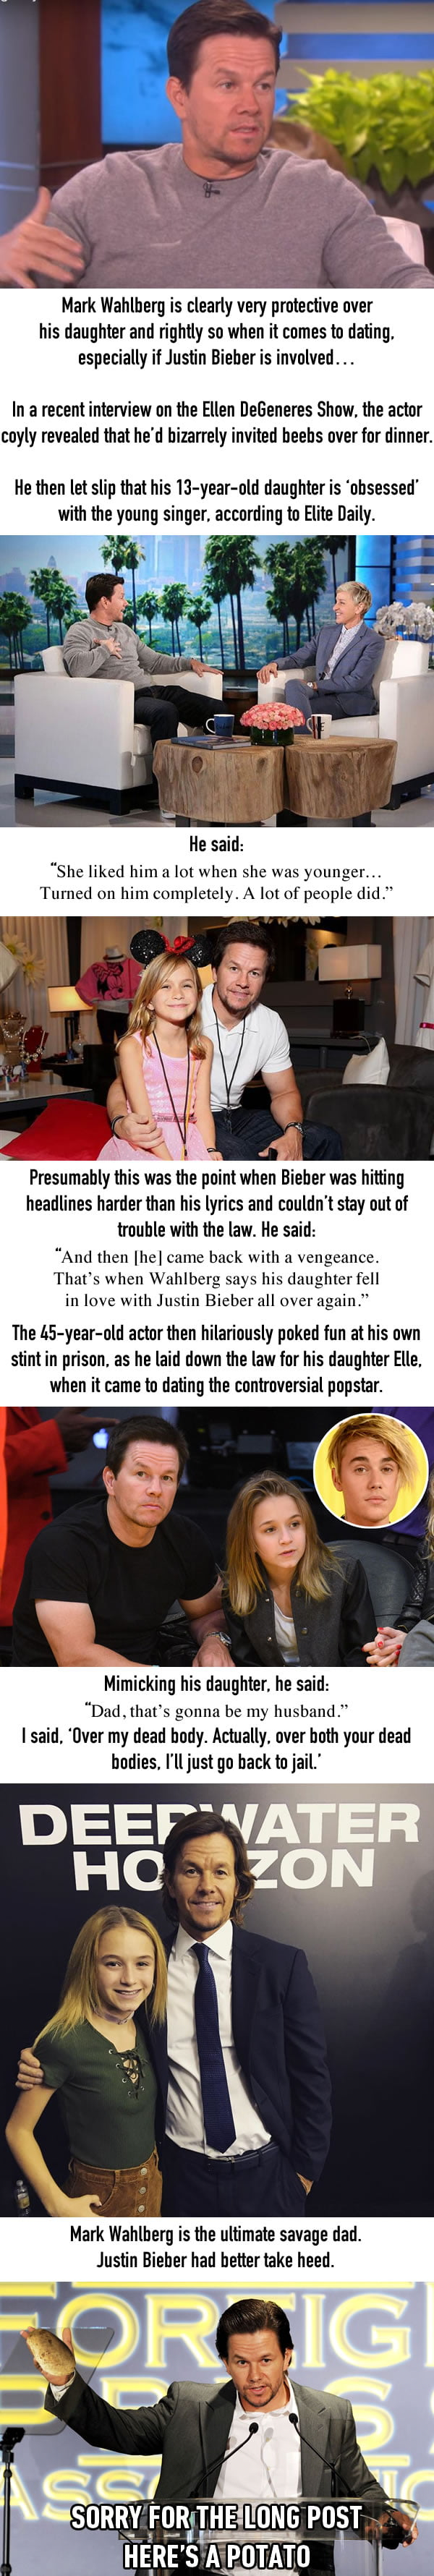 Mark Wahlberg Says He'll Go Back To Prison If Justin Bieber Dates His Daughter